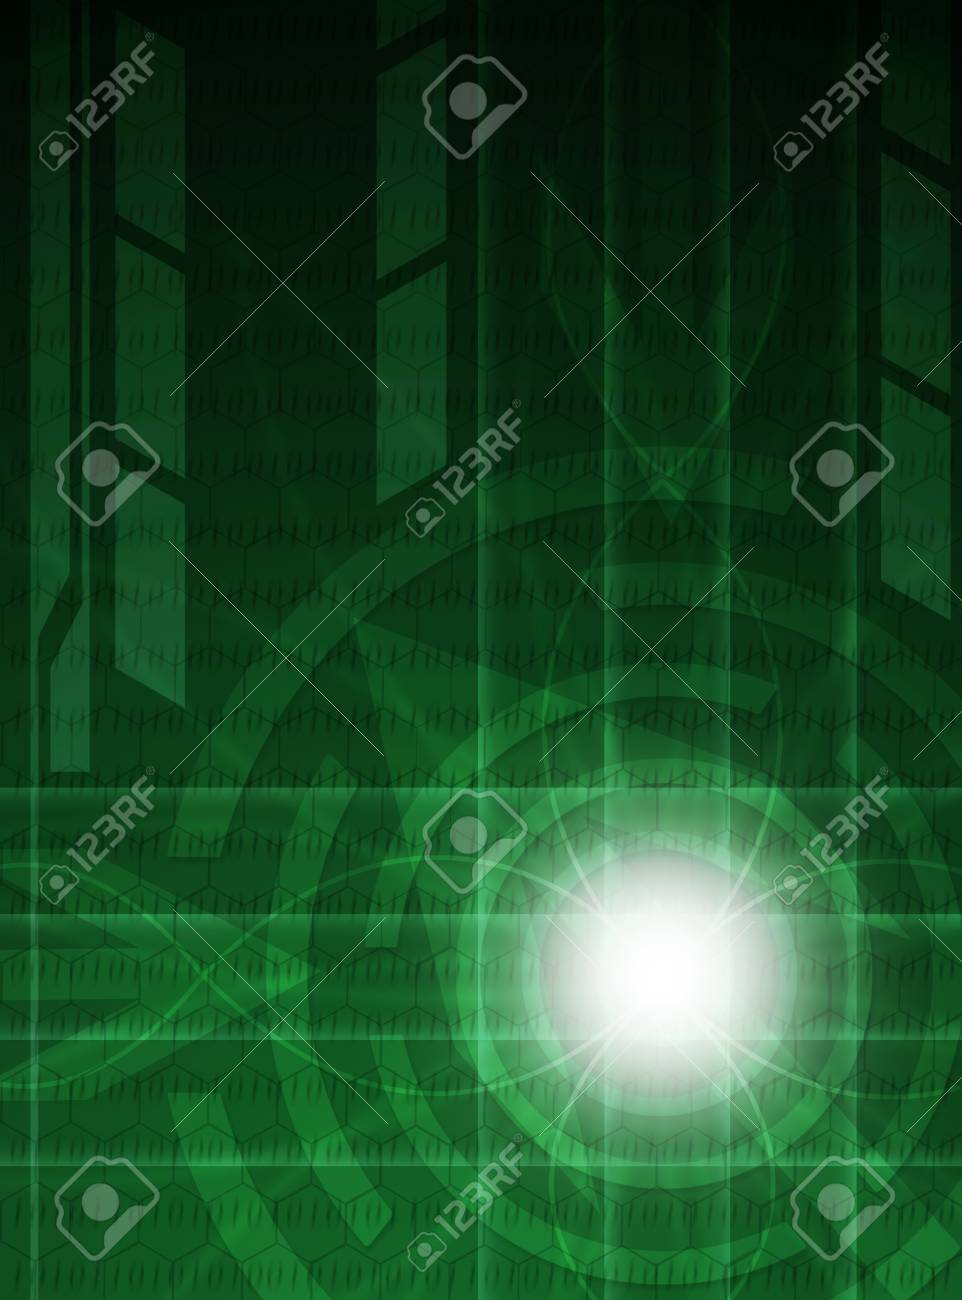 Abstract green technology background. Stock Photo - 11006107